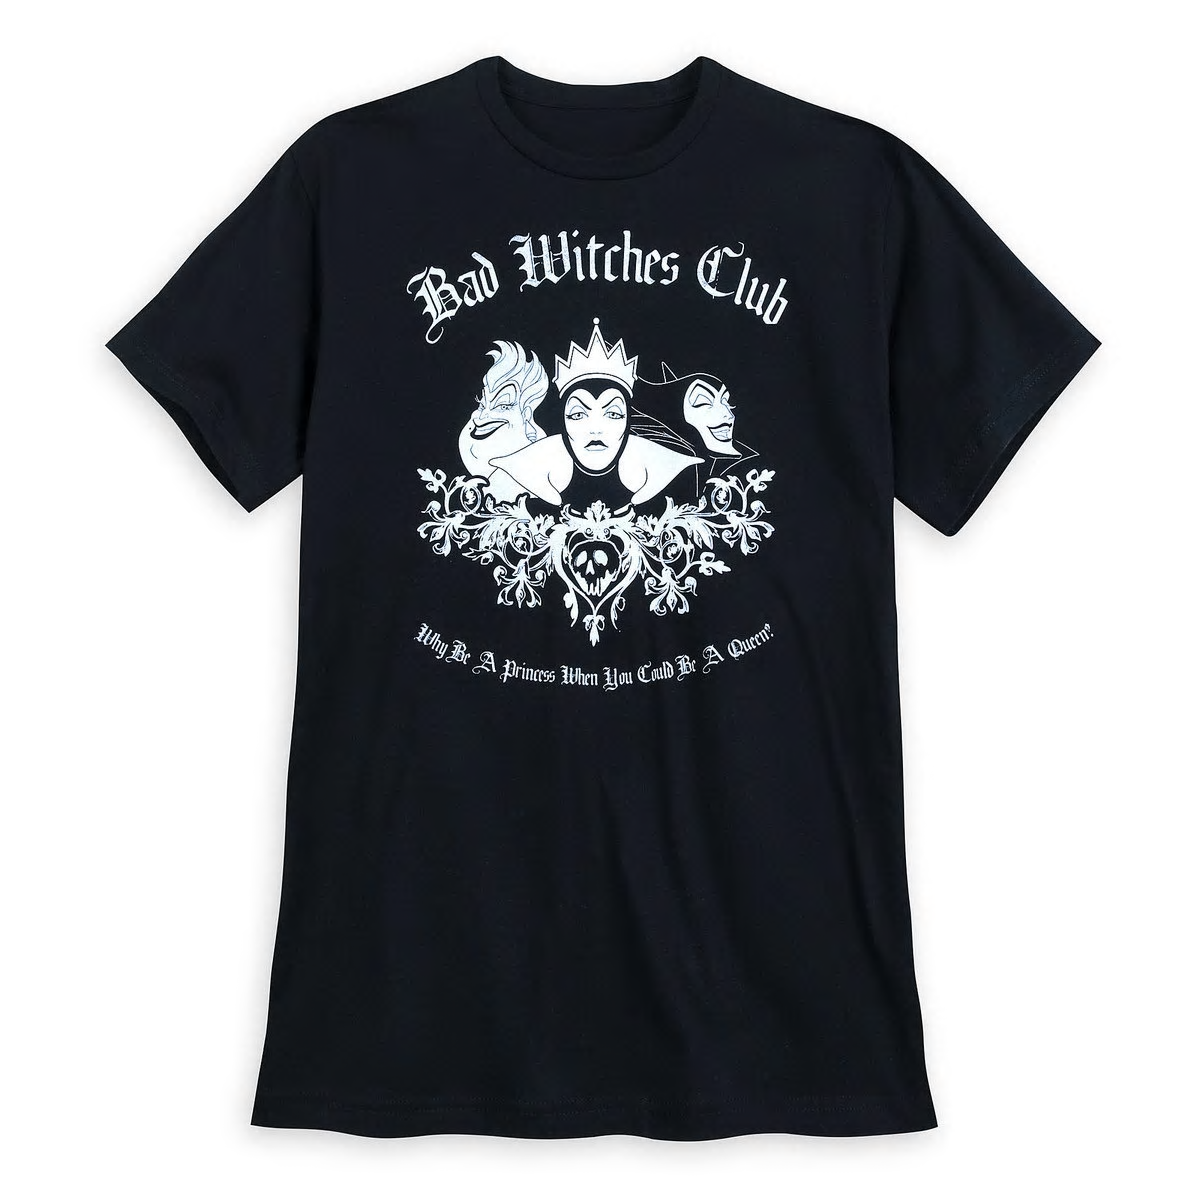 Disney Villains TShirt for Adults The worst witch